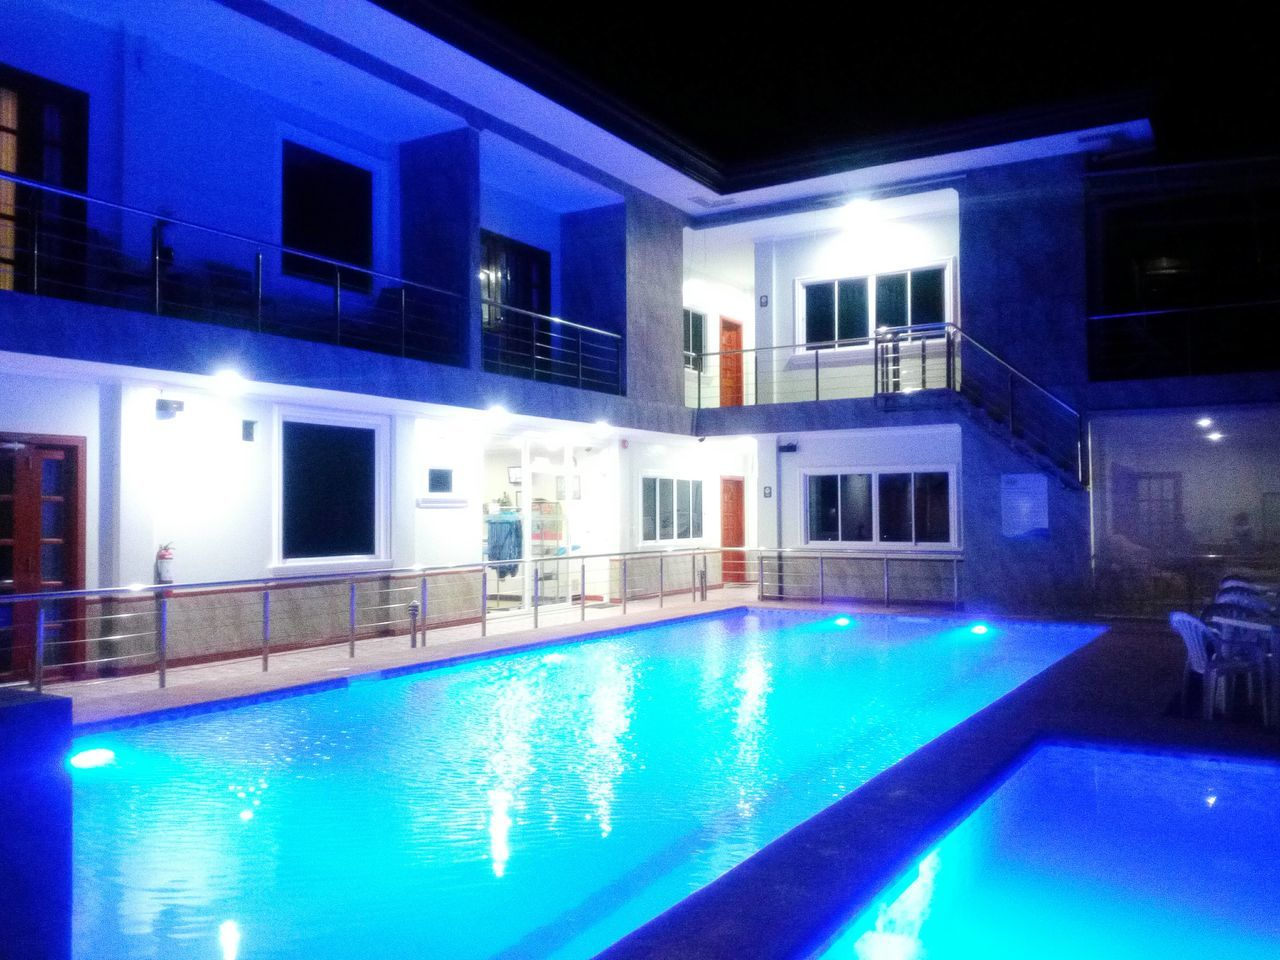 swimming pool, water, illuminated, night, poolside, architecture, building exterior, built structure, luxury, reflection, tourist resort, blue, luxury hotel, no people, outdoors, sky